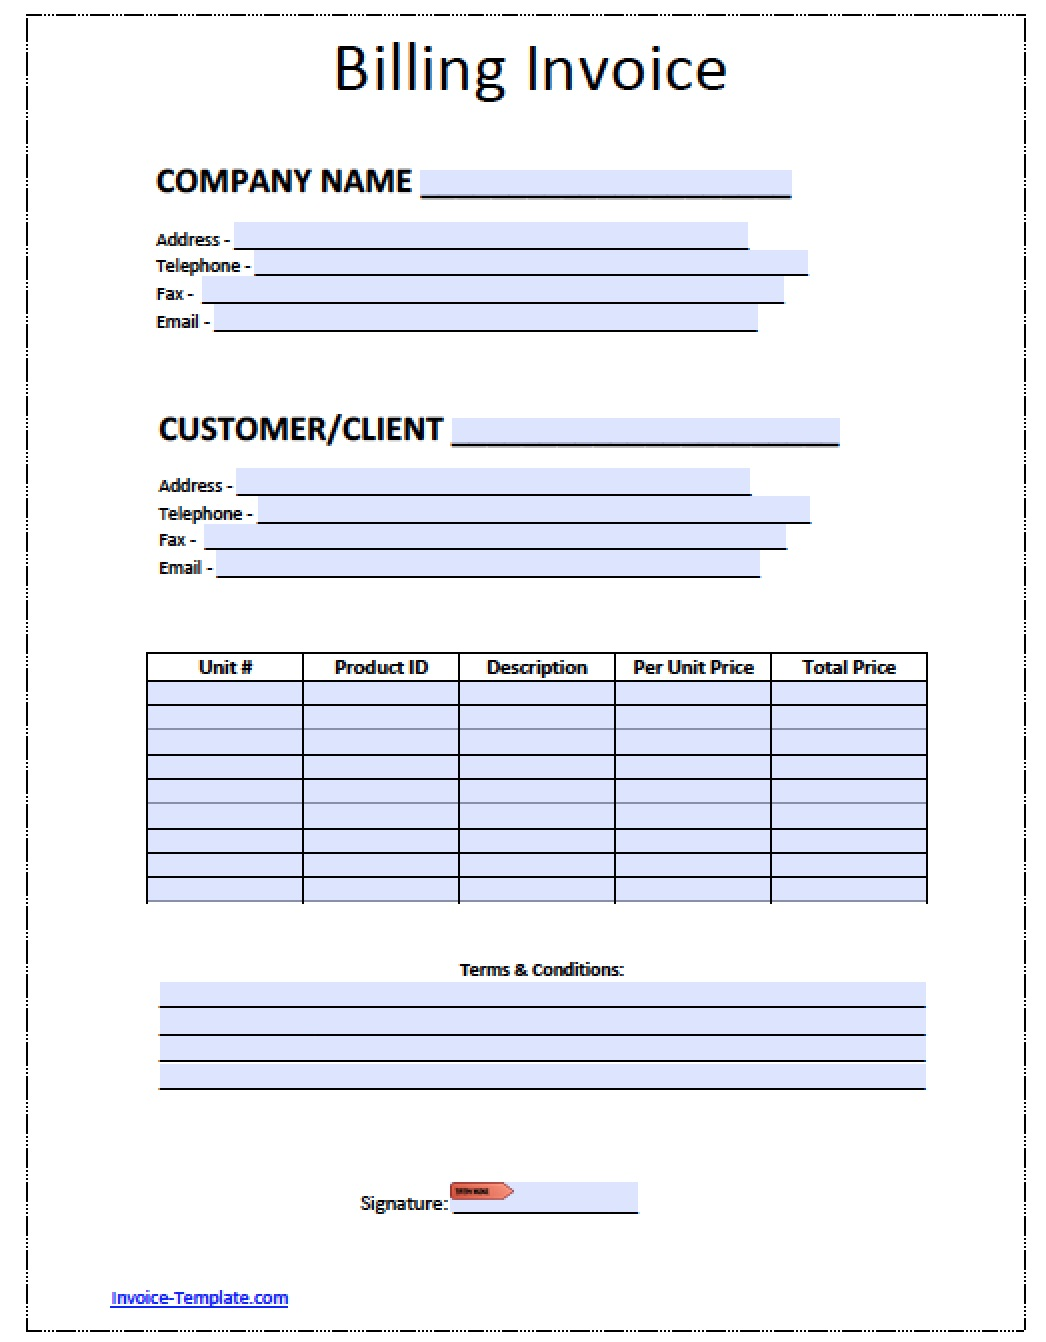 Centralasianshepherdus  Nice Billing Invoice Invoices Faq U Cloudflare Support Billing  With Fair Free Billing Invoice Template  Excel  Pdf  Word Doc  Billing With Breathtaking Purolator Commercial Invoice Also Basic Invoice Format In Addition Invoice Processing Flowchart And Template Commercial Invoice As Well As Overdue Invoices Letter Additionally Australian Invoice From Happytomco With Centralasianshepherdus  Fair Billing Invoice Invoices Faq U Cloudflare Support Billing  With Breathtaking Free Billing Invoice Template  Excel  Pdf  Word Doc  Billing And Nice Purolator Commercial Invoice Also Basic Invoice Format In Addition Invoice Processing Flowchart From Happytomco